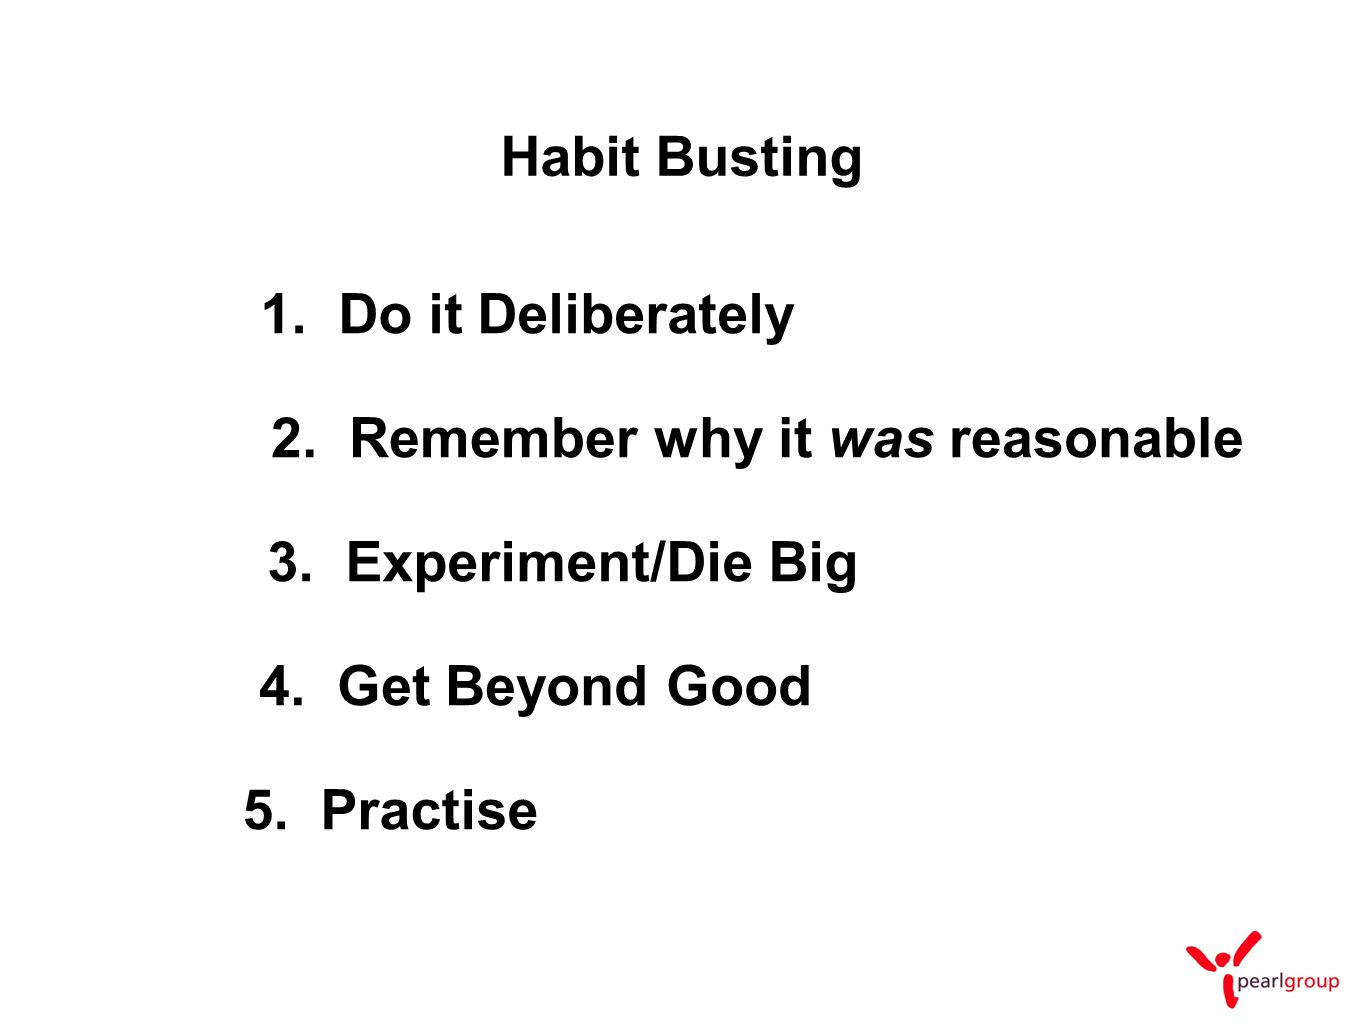 1. Do it Deliberately 2. Remember why it was reasonable 3. Experiment/Die Big 4. Get Beyond Good Habit Busting 5. Practise